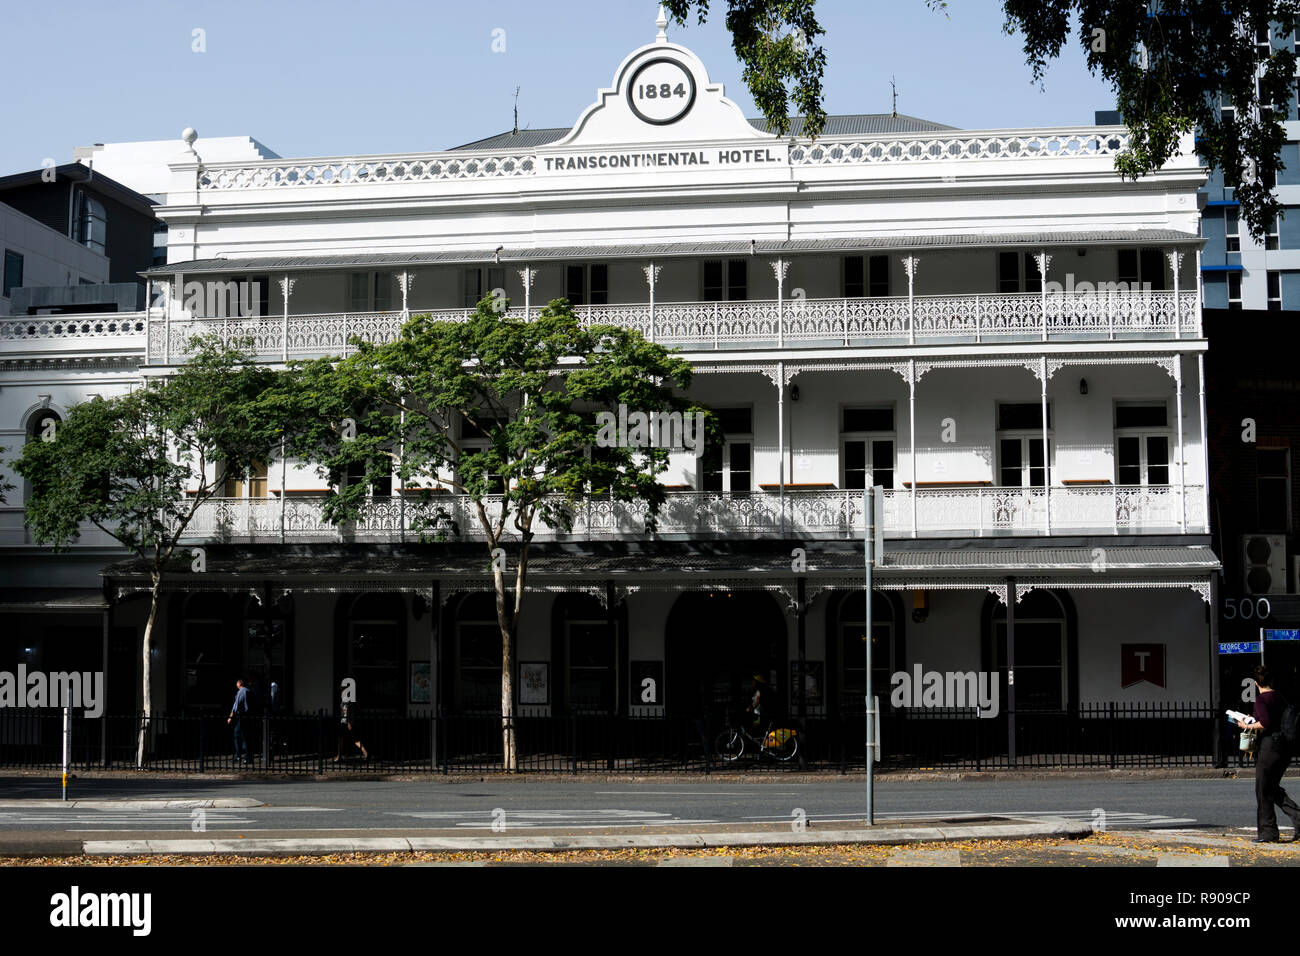 The Transcontinental Hotel, George Street, Brisbane, Queensland, Australia - Stock Image